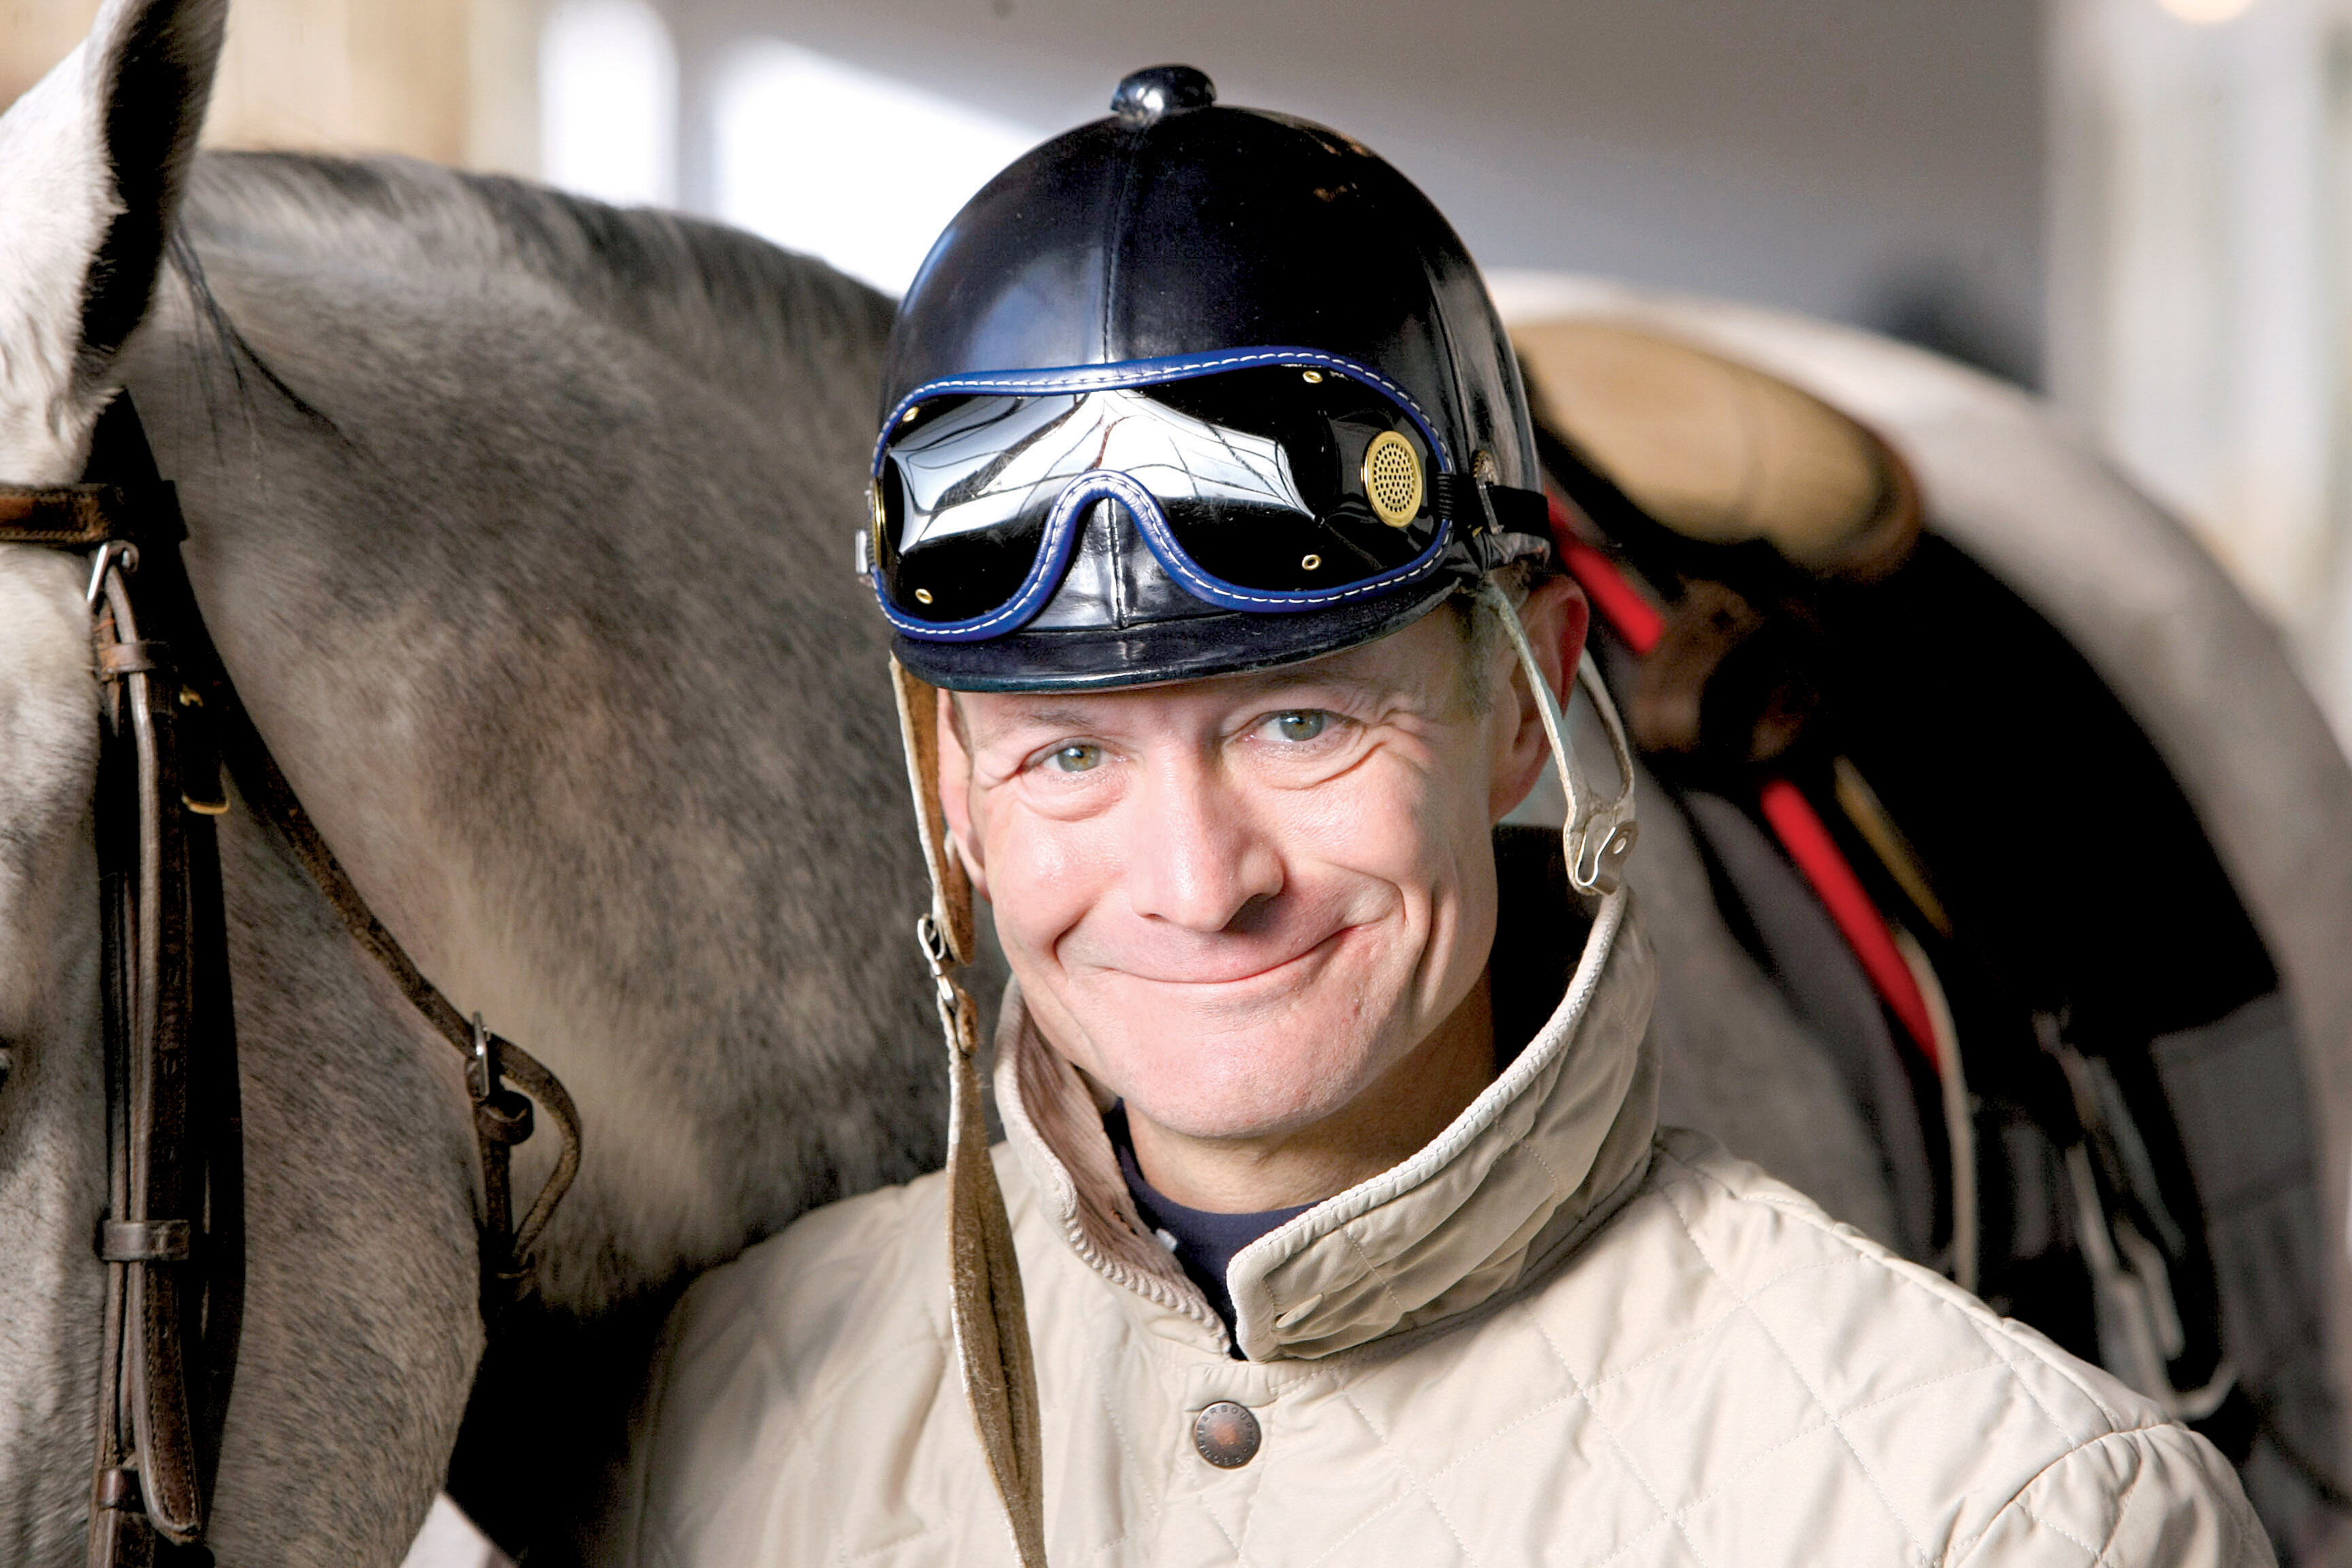 Oaklawn stalwart Calvin Borel is riding high again after